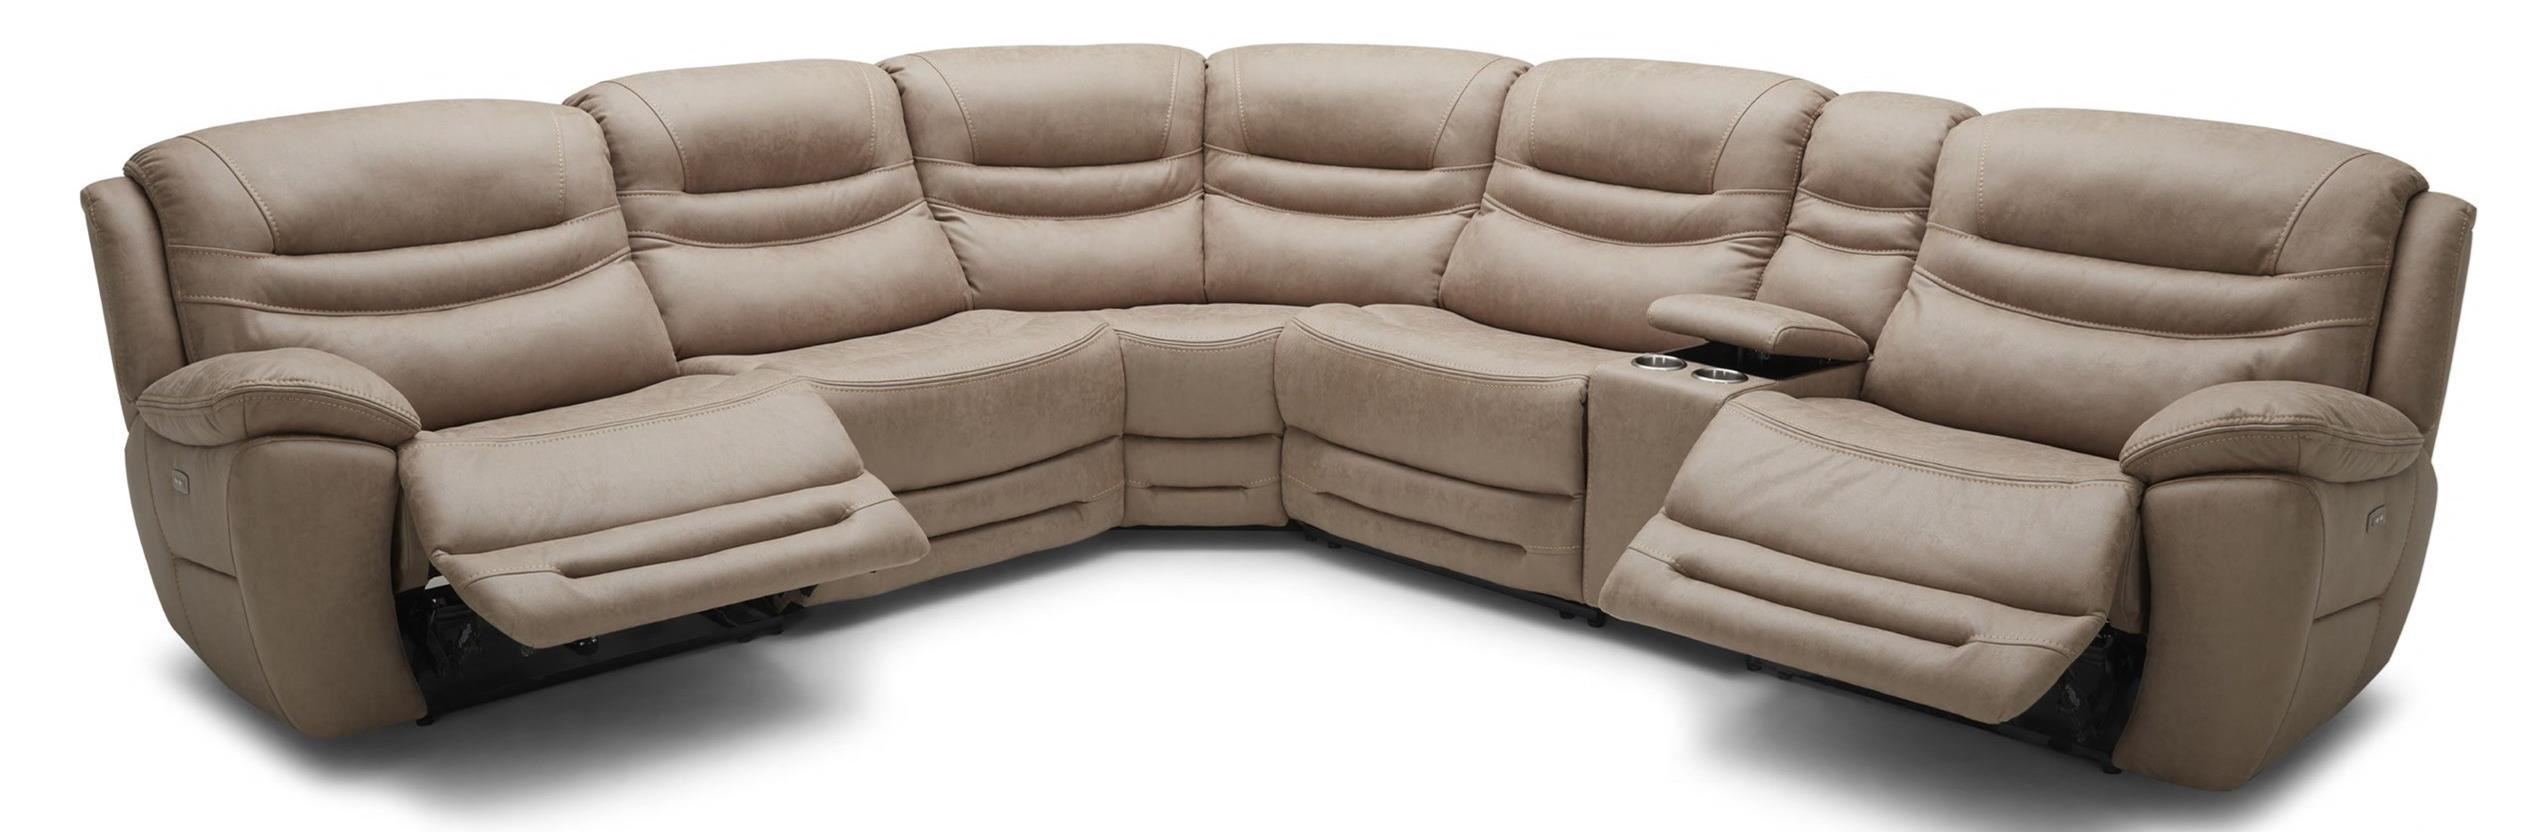 KM083 Six Piece Power Console Reclining Sectional Sofa With 4 Recliners And  Power Headrests By Kuka Home